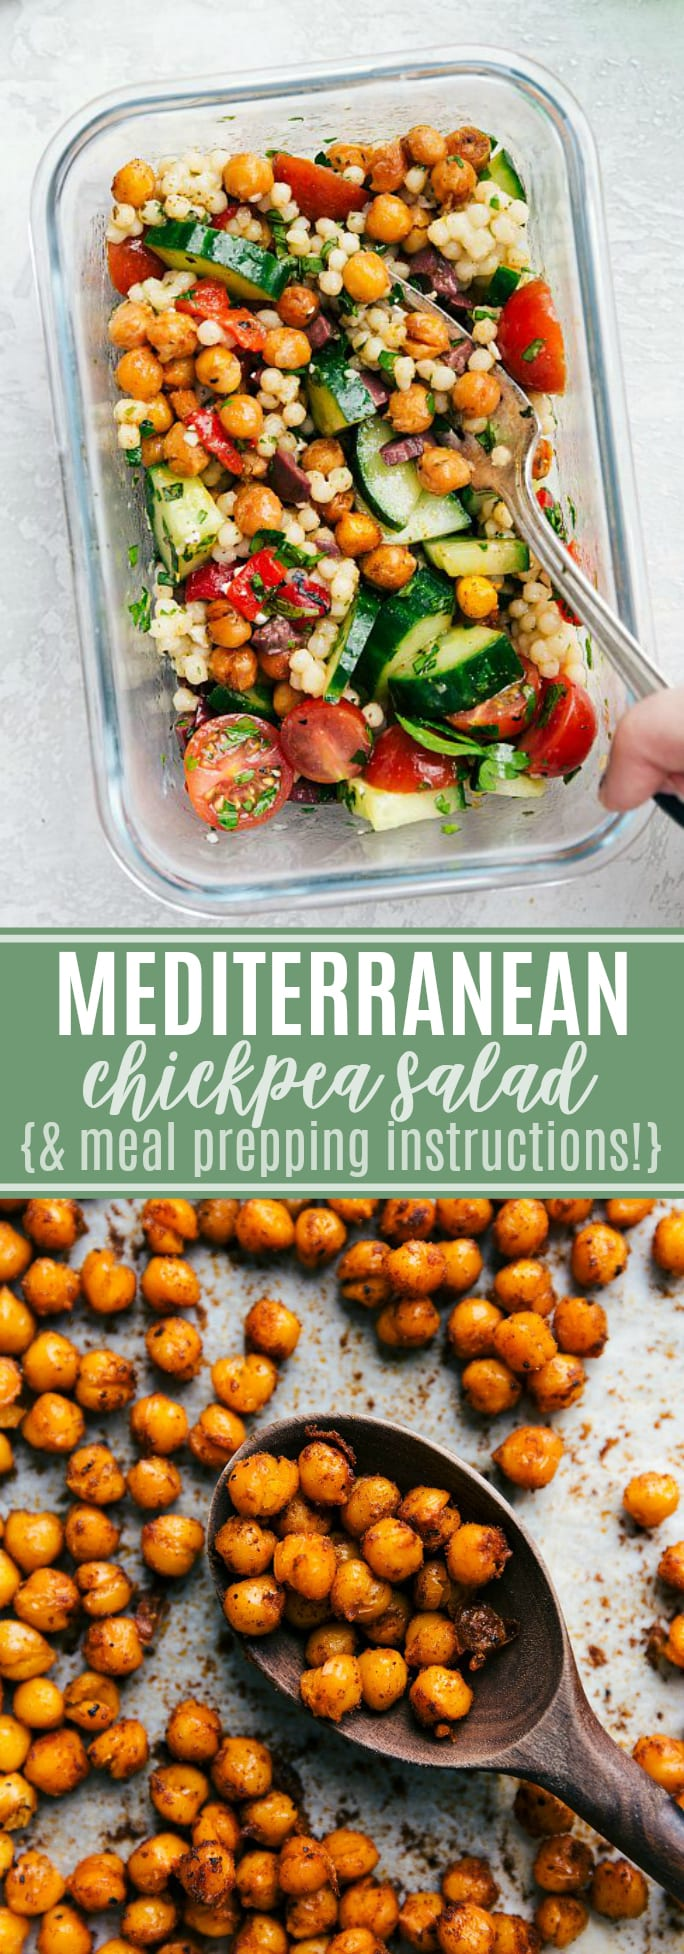 This chickpea salad is so flavorful, made with good-for-you ingredients, & easy to prepare! PLUS meal prepping instructions! via chelseasmessyapron.com #chickpea #salad #mediterranean #easy #quick #meal #prep #healthy #recipe #kidfriendly #couscous #fresh